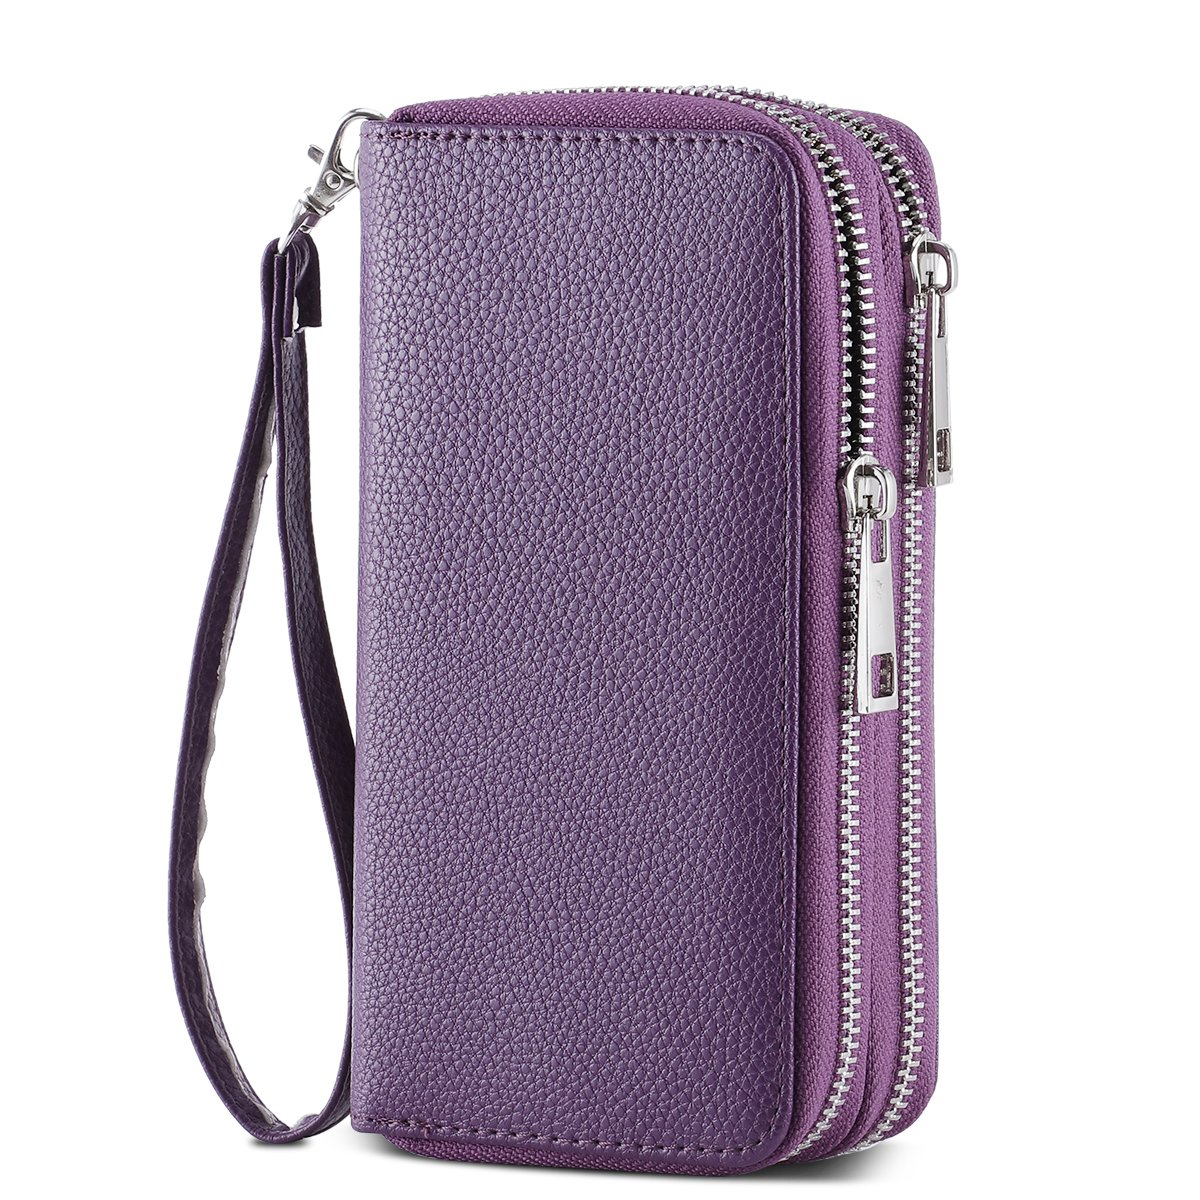 HAWEE Cellphone Wallet Dual Zipper Wristlet Purse with Credit Card Case/Coin Pouch/Smart Phone Pocket Soft Leather for Women or Lady, Purple-Lichi